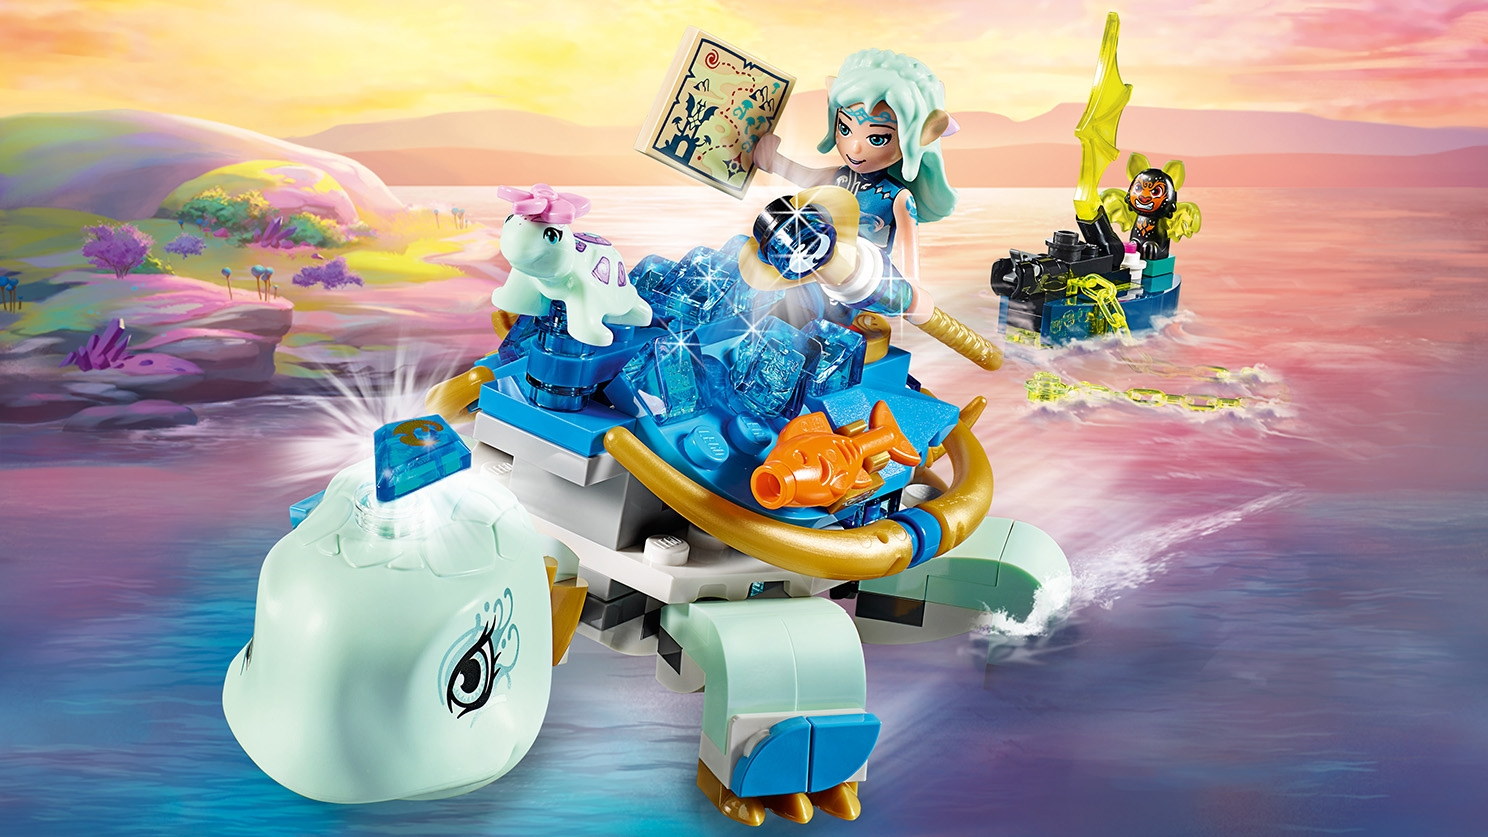 41191 Lego Elves-Naida and the Water Tortoise